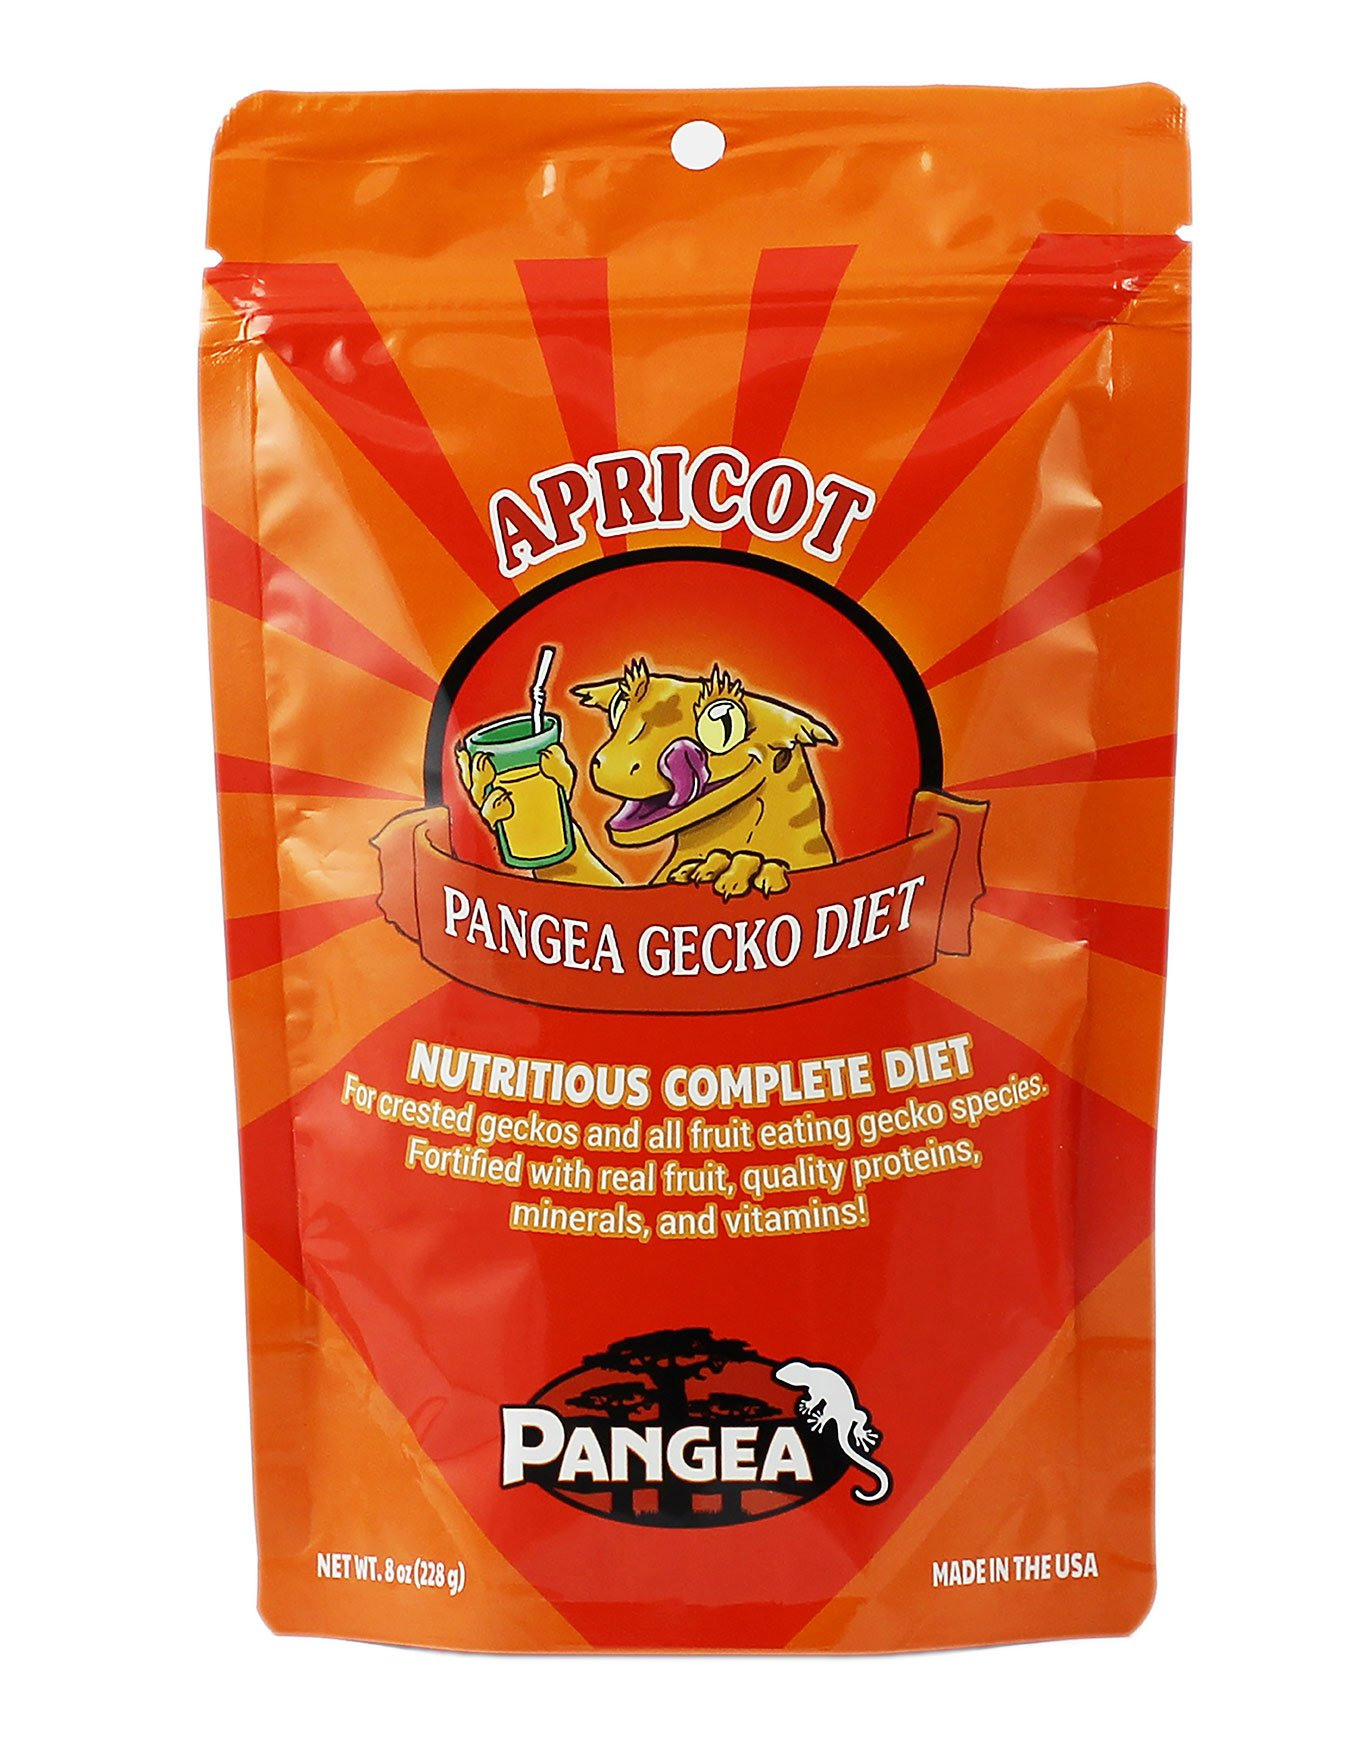 Pangea Fruit Mix Apricot Complete Crested Gecko Food 1/2 lb by Pangea (Image #1)